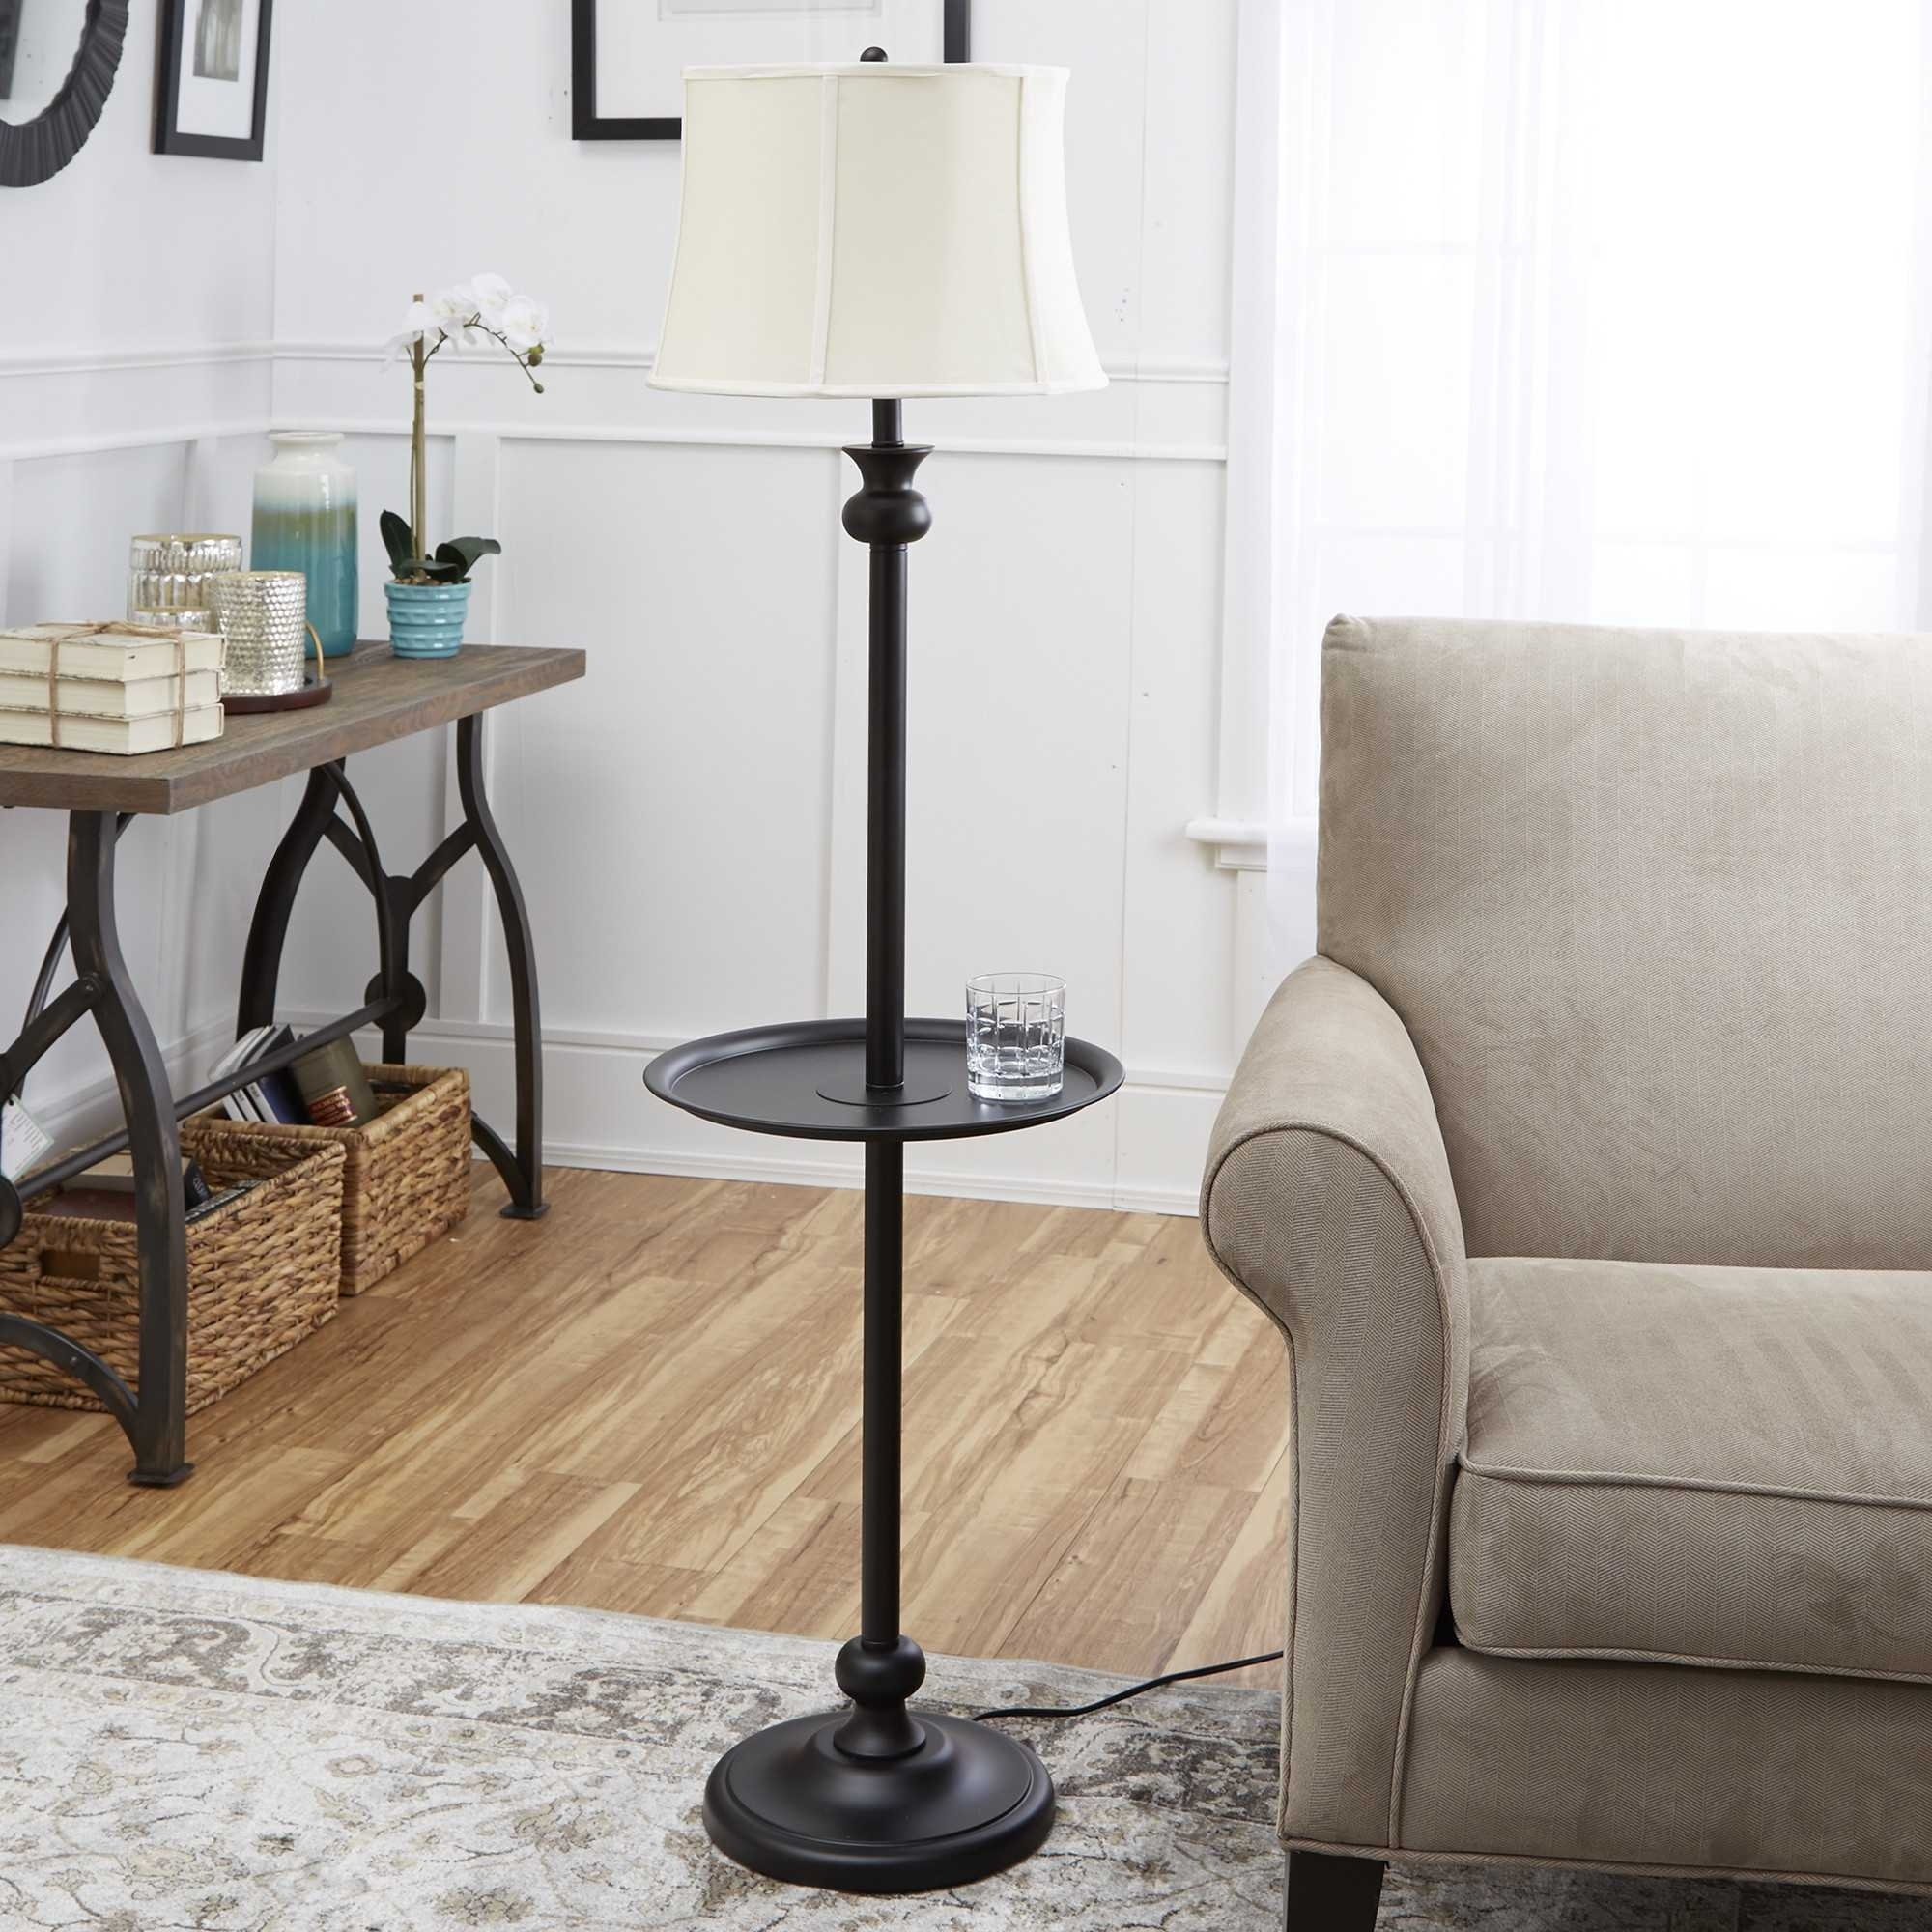 Fashionable Side Table Lamps For Bedroom Feng Shui Living Room 2018 Also Pertaining To Living Room Coffee Table Lamps (View 9 of 20)